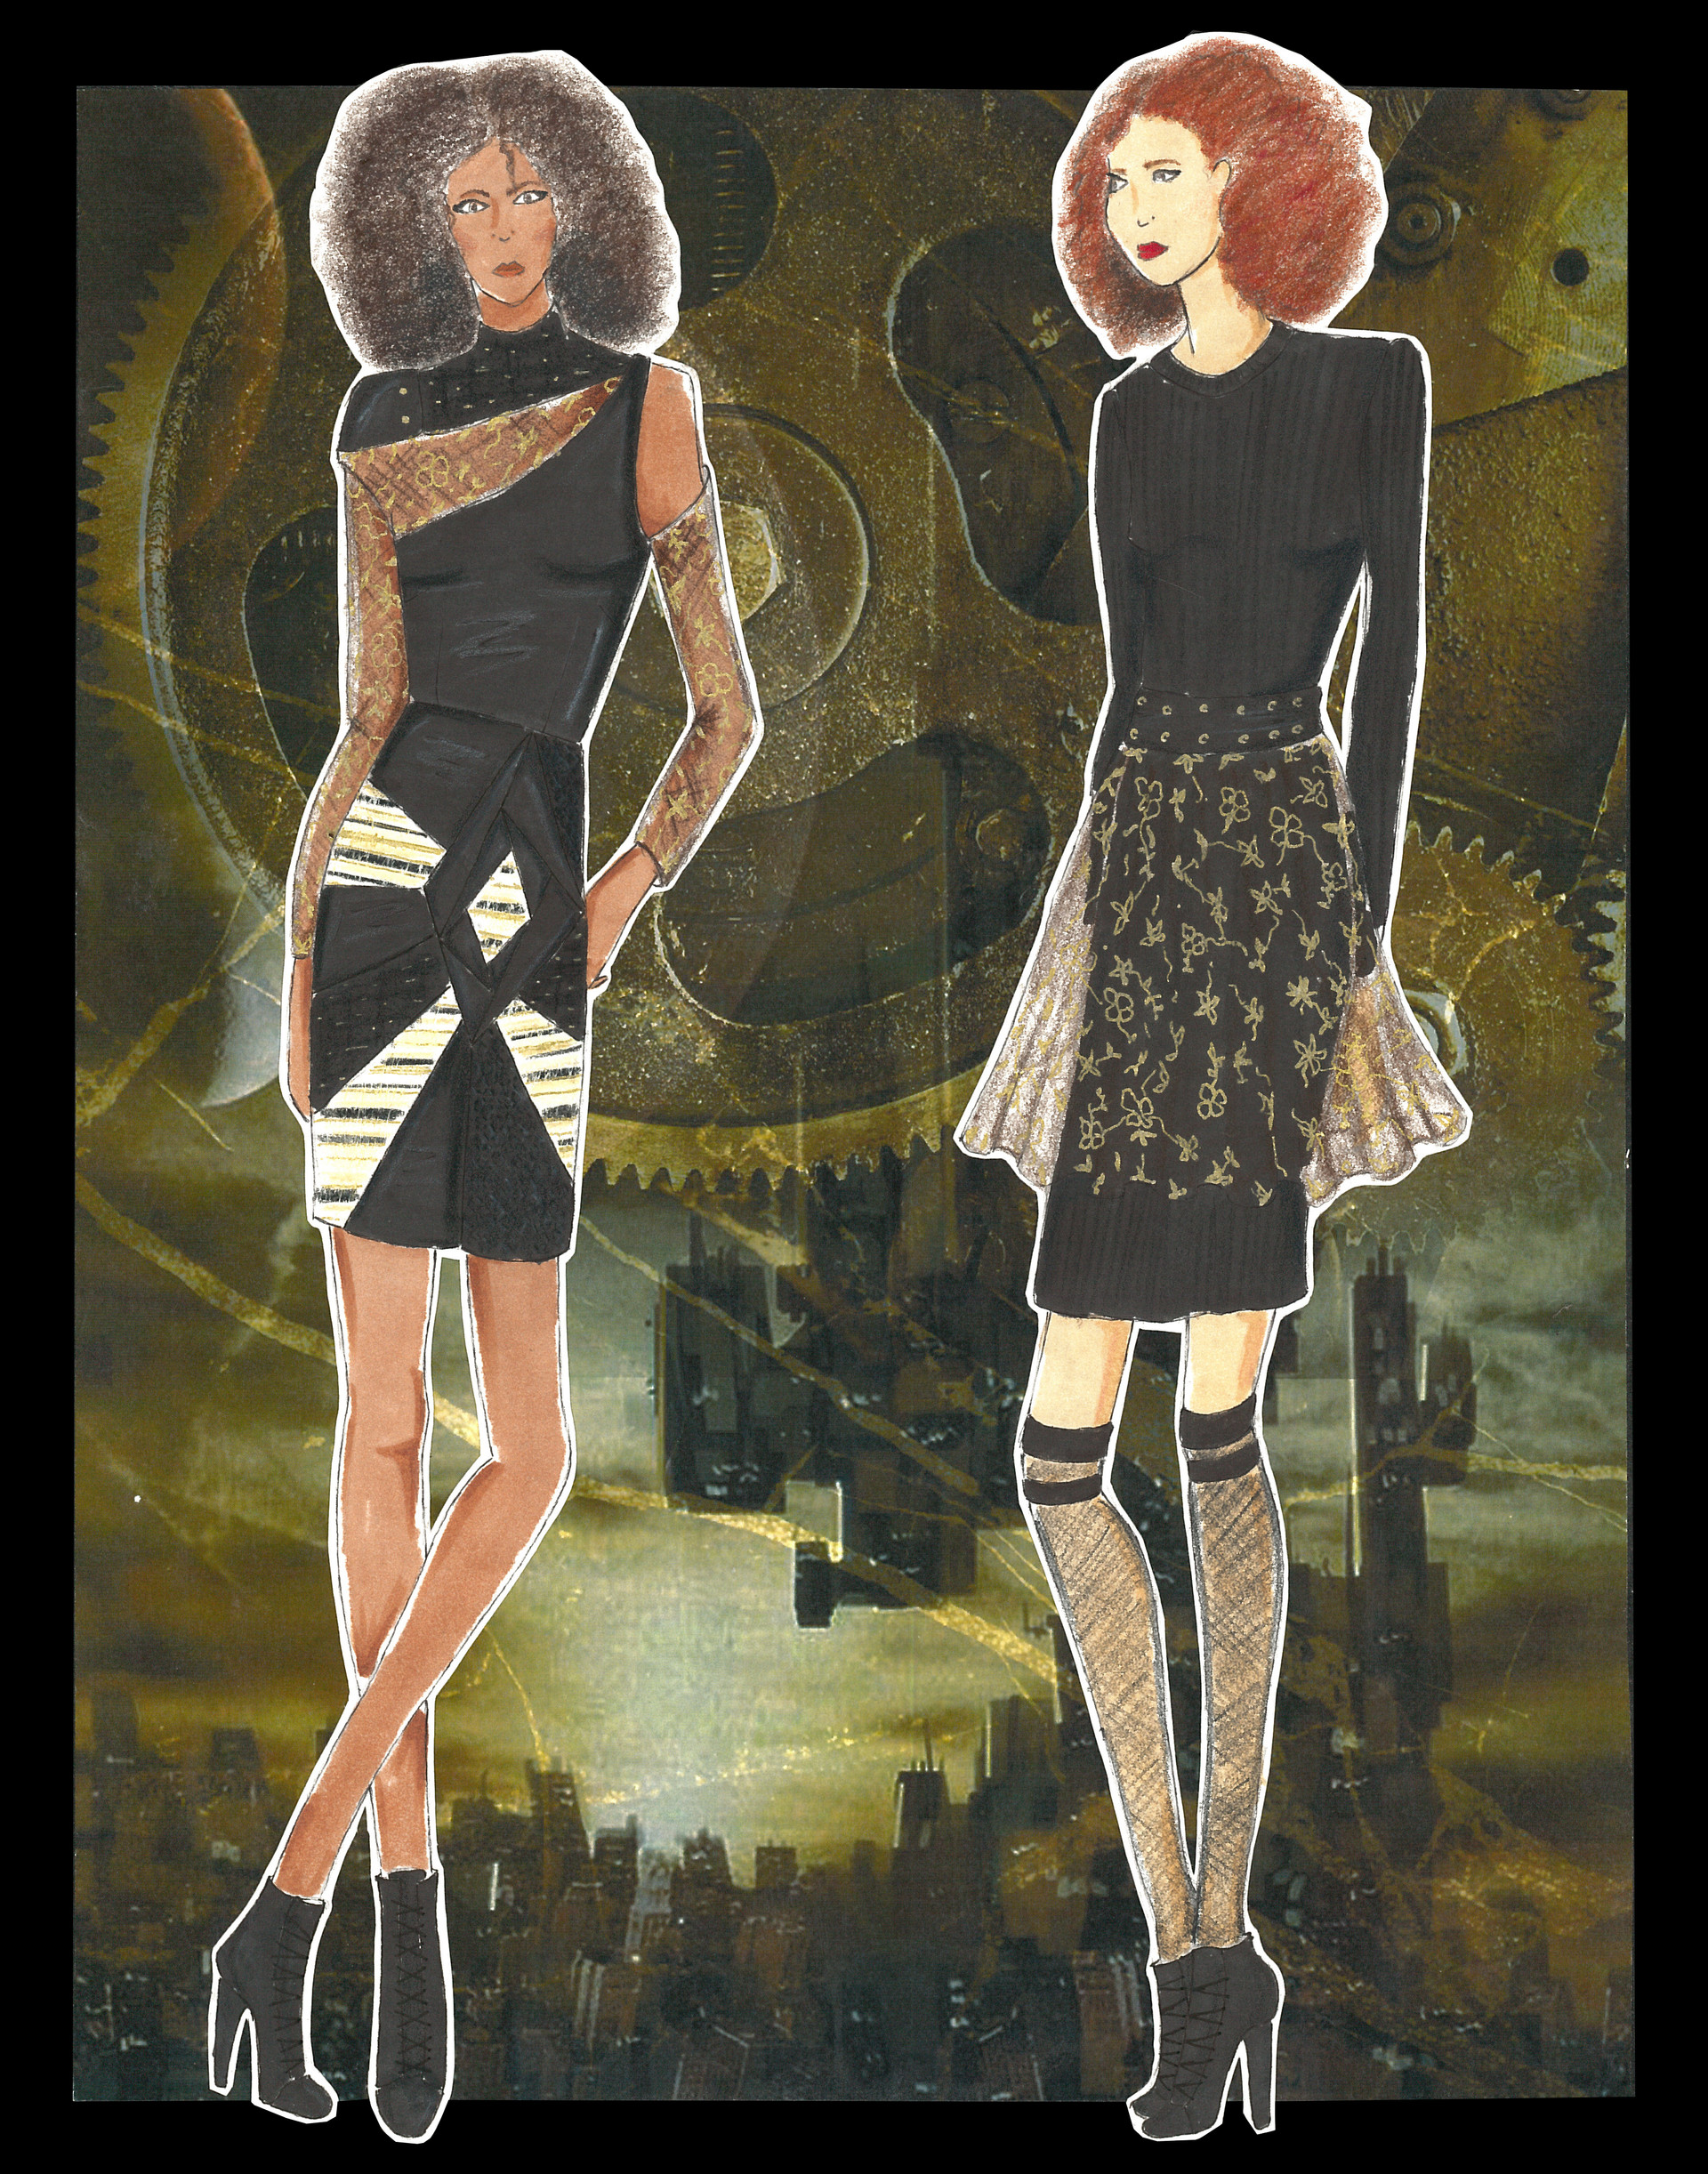 Figures 3 & 4 featuring color black dress and lace skirt